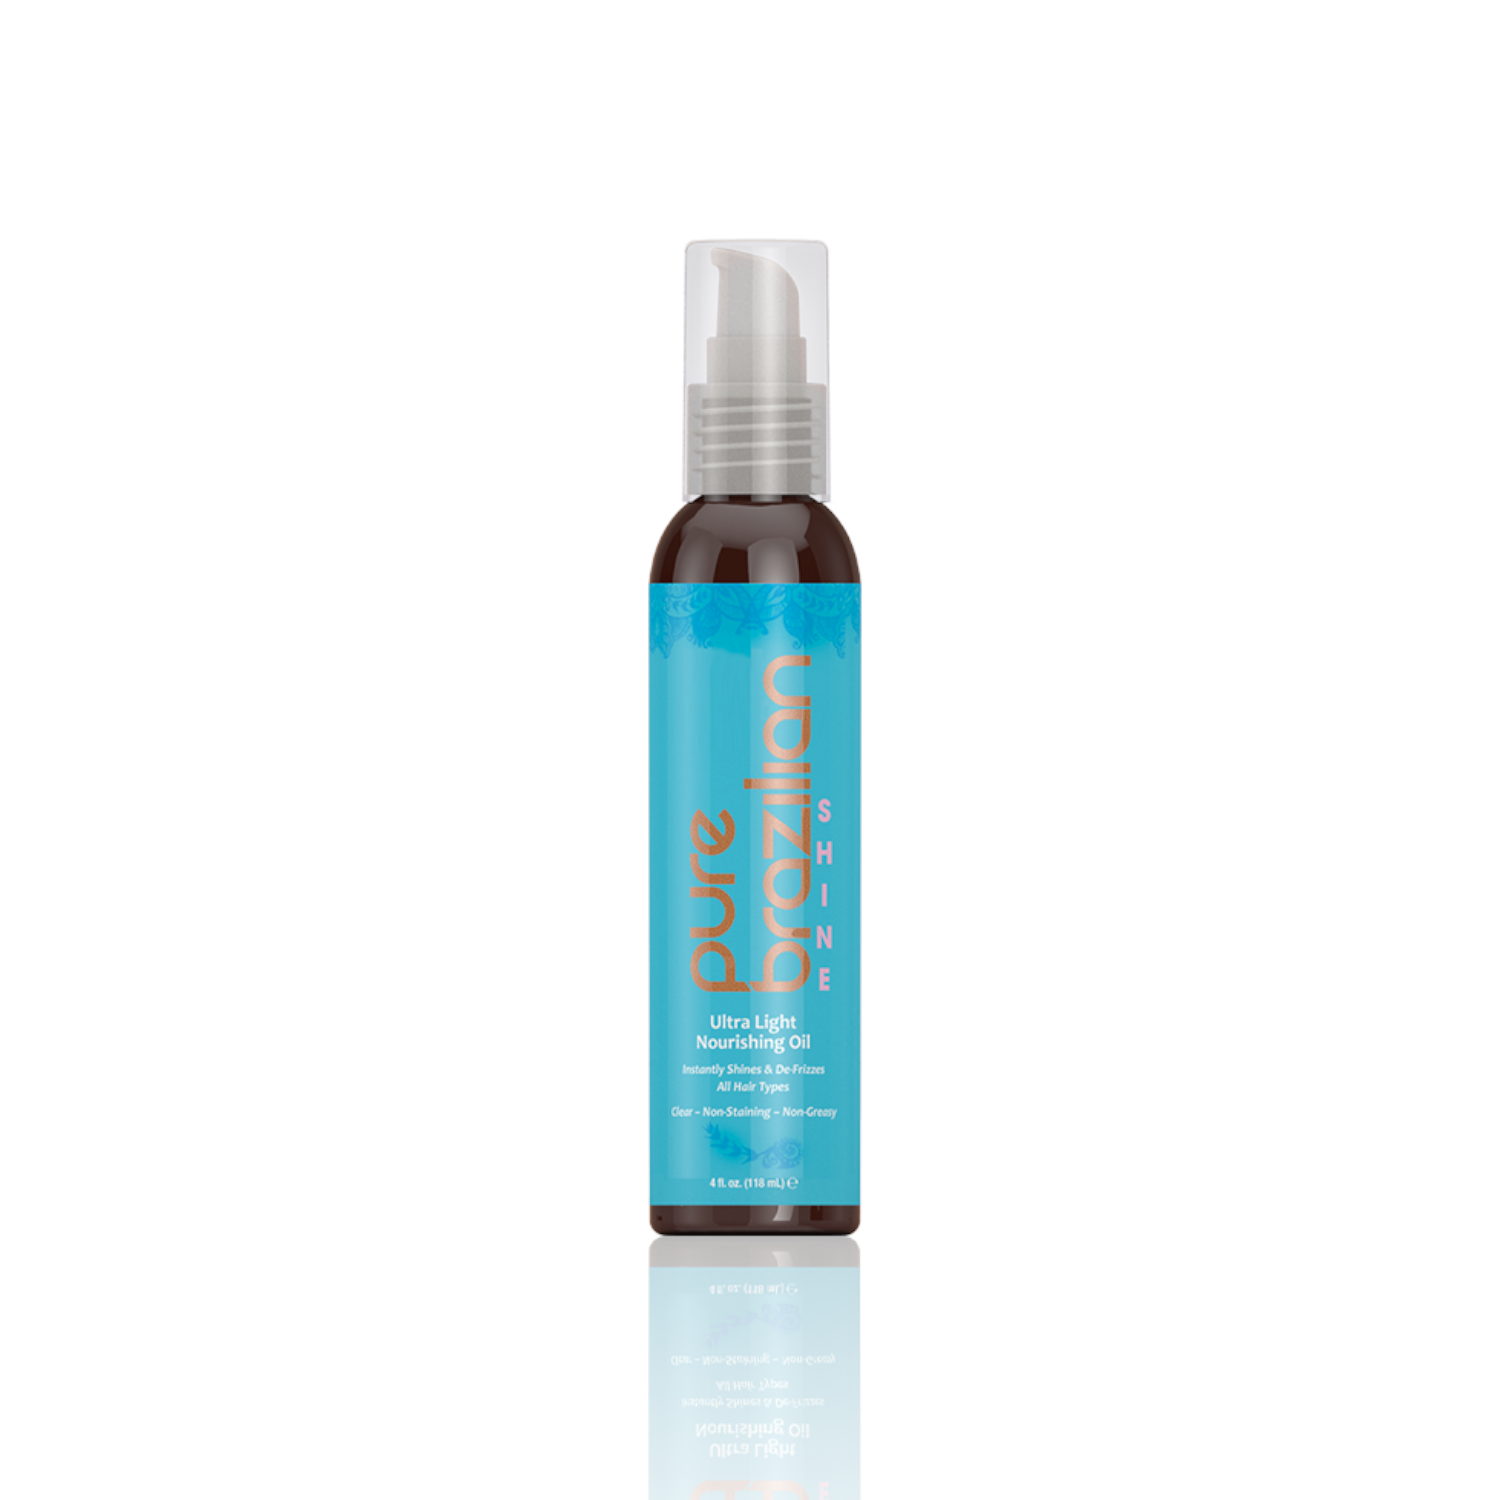 Shine Ultra Light Nourishing Oil